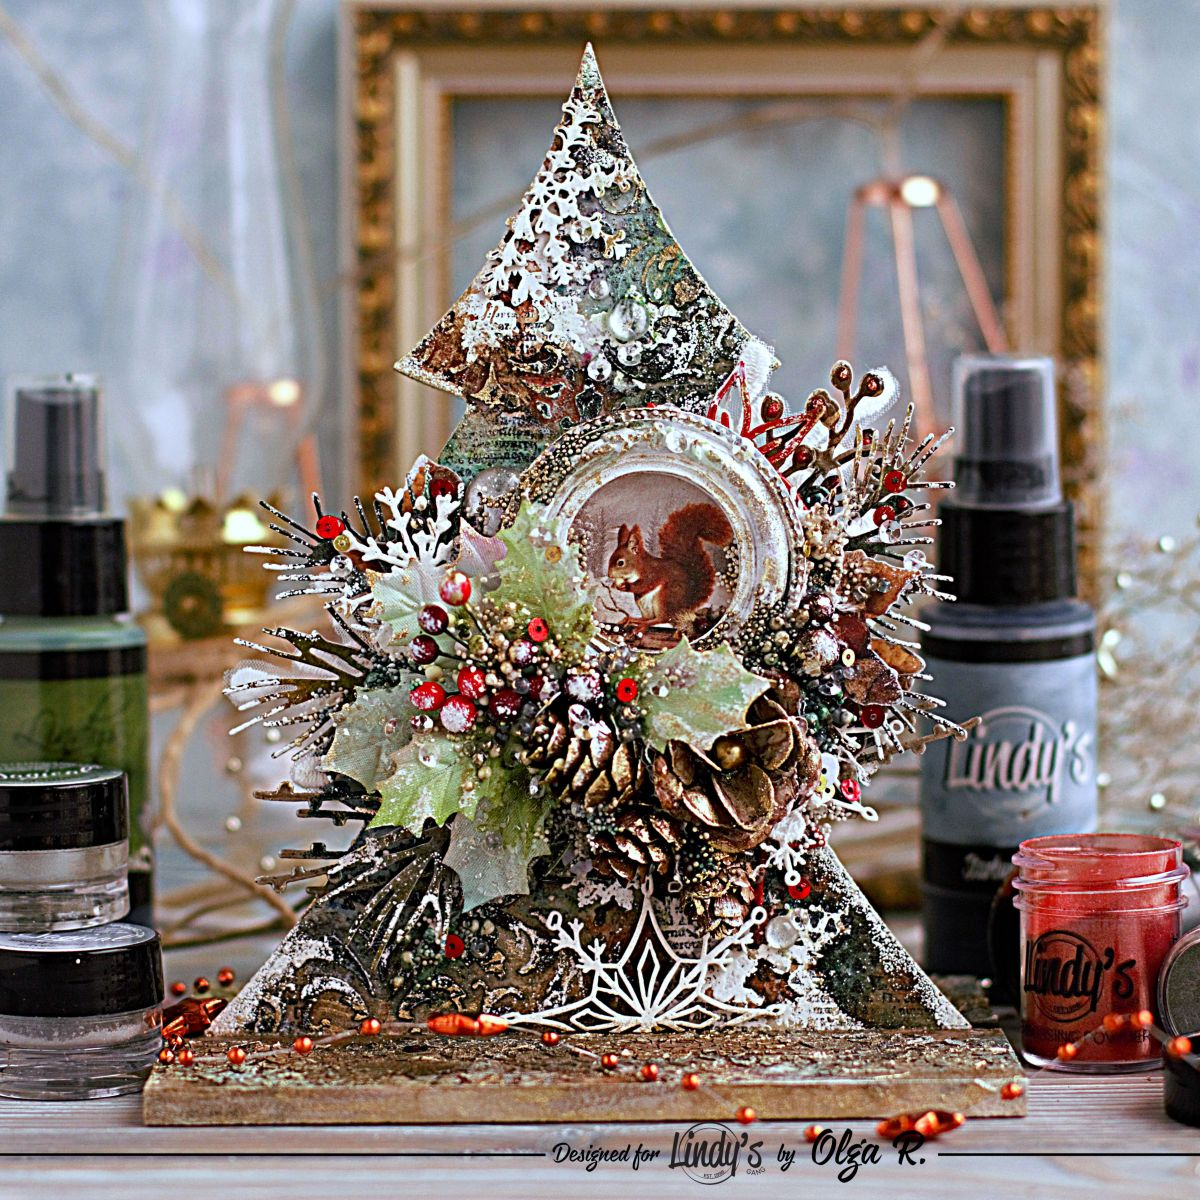 Pine Tree Decor with Olga Ravenskaya